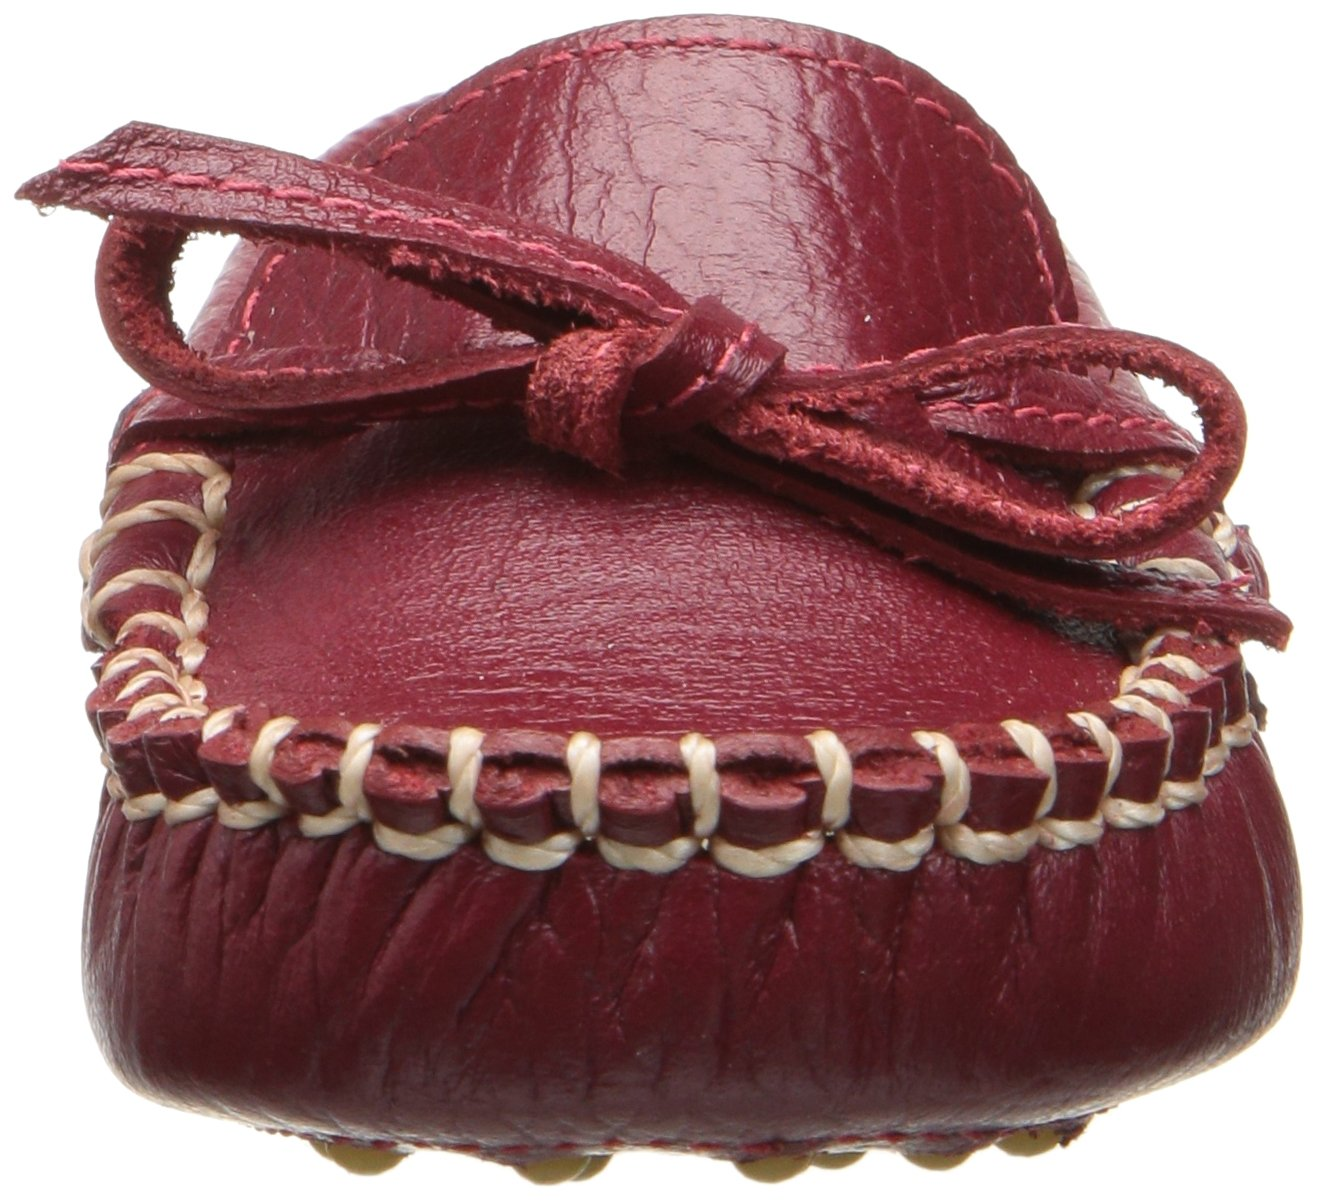 Elephantito Boys' Driver Loafer-K, Racing Red 10 M US Toddler by Elephantito (Image #4)